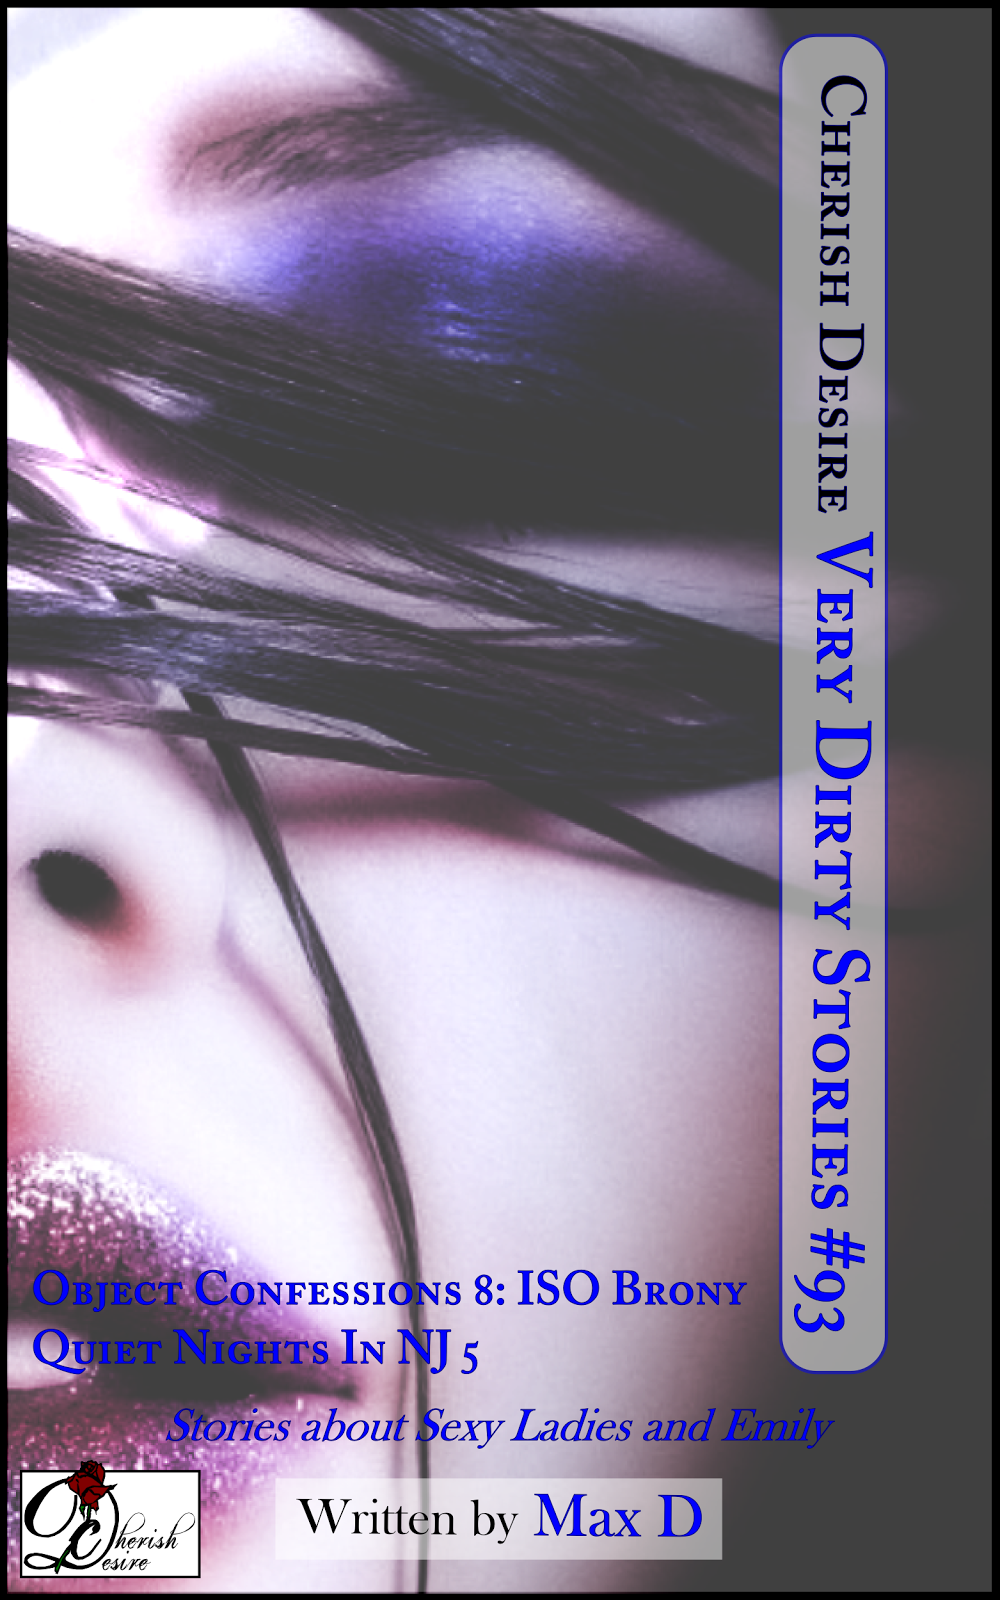 Cherish Desire: Very Dirty Stories #93, Max D, erotica